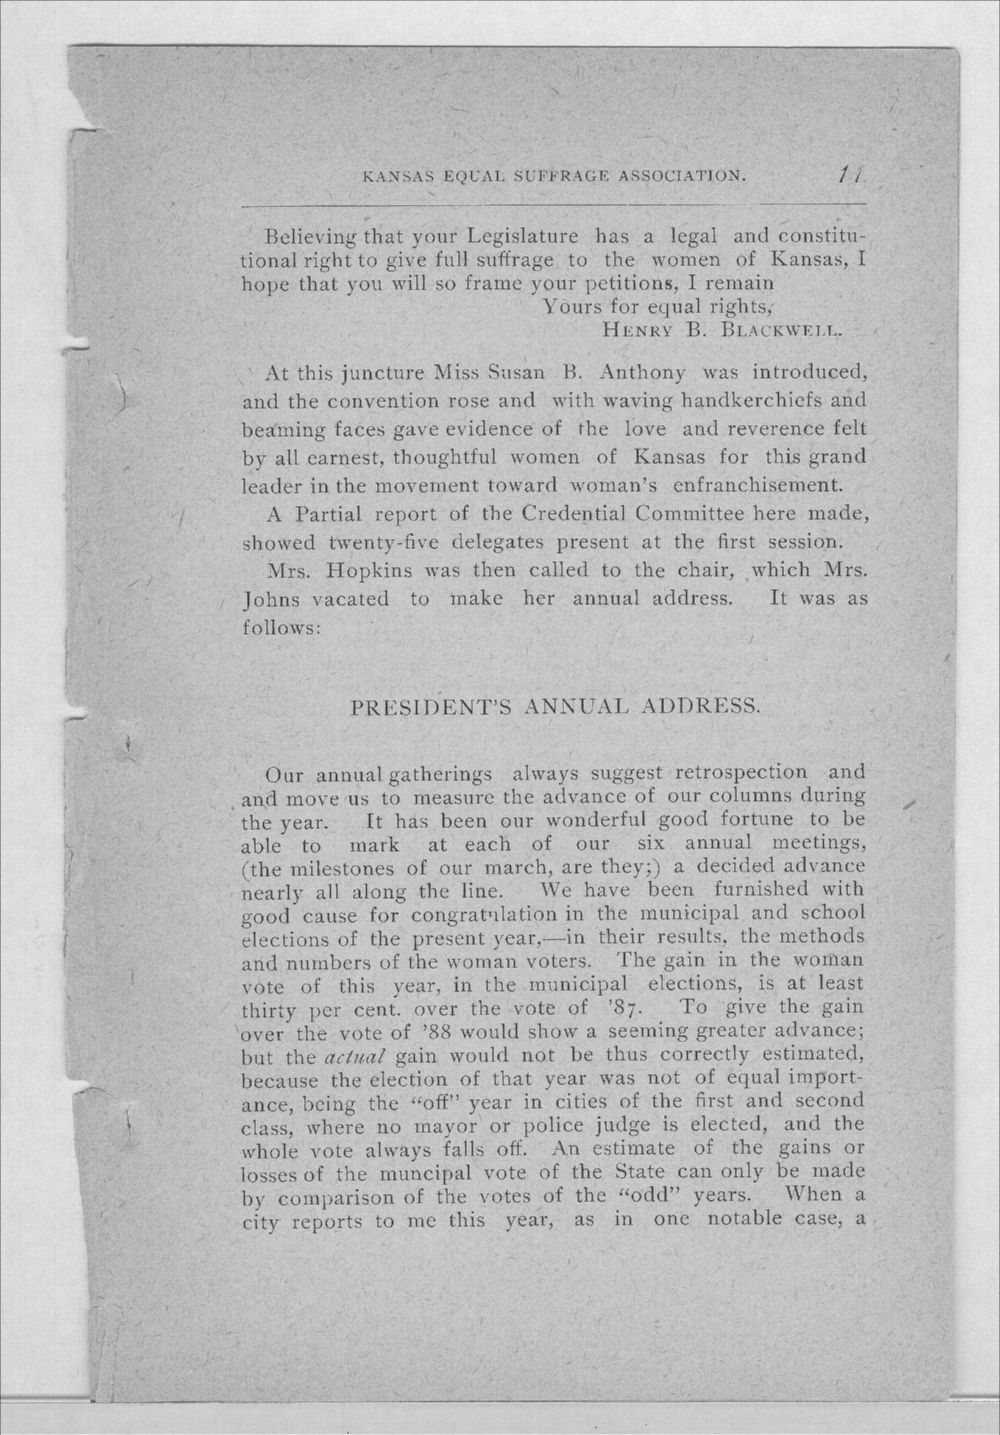 Minutes of the Kansas Equal Suffrage Association at the sixth annual meeting in 1889 - 11